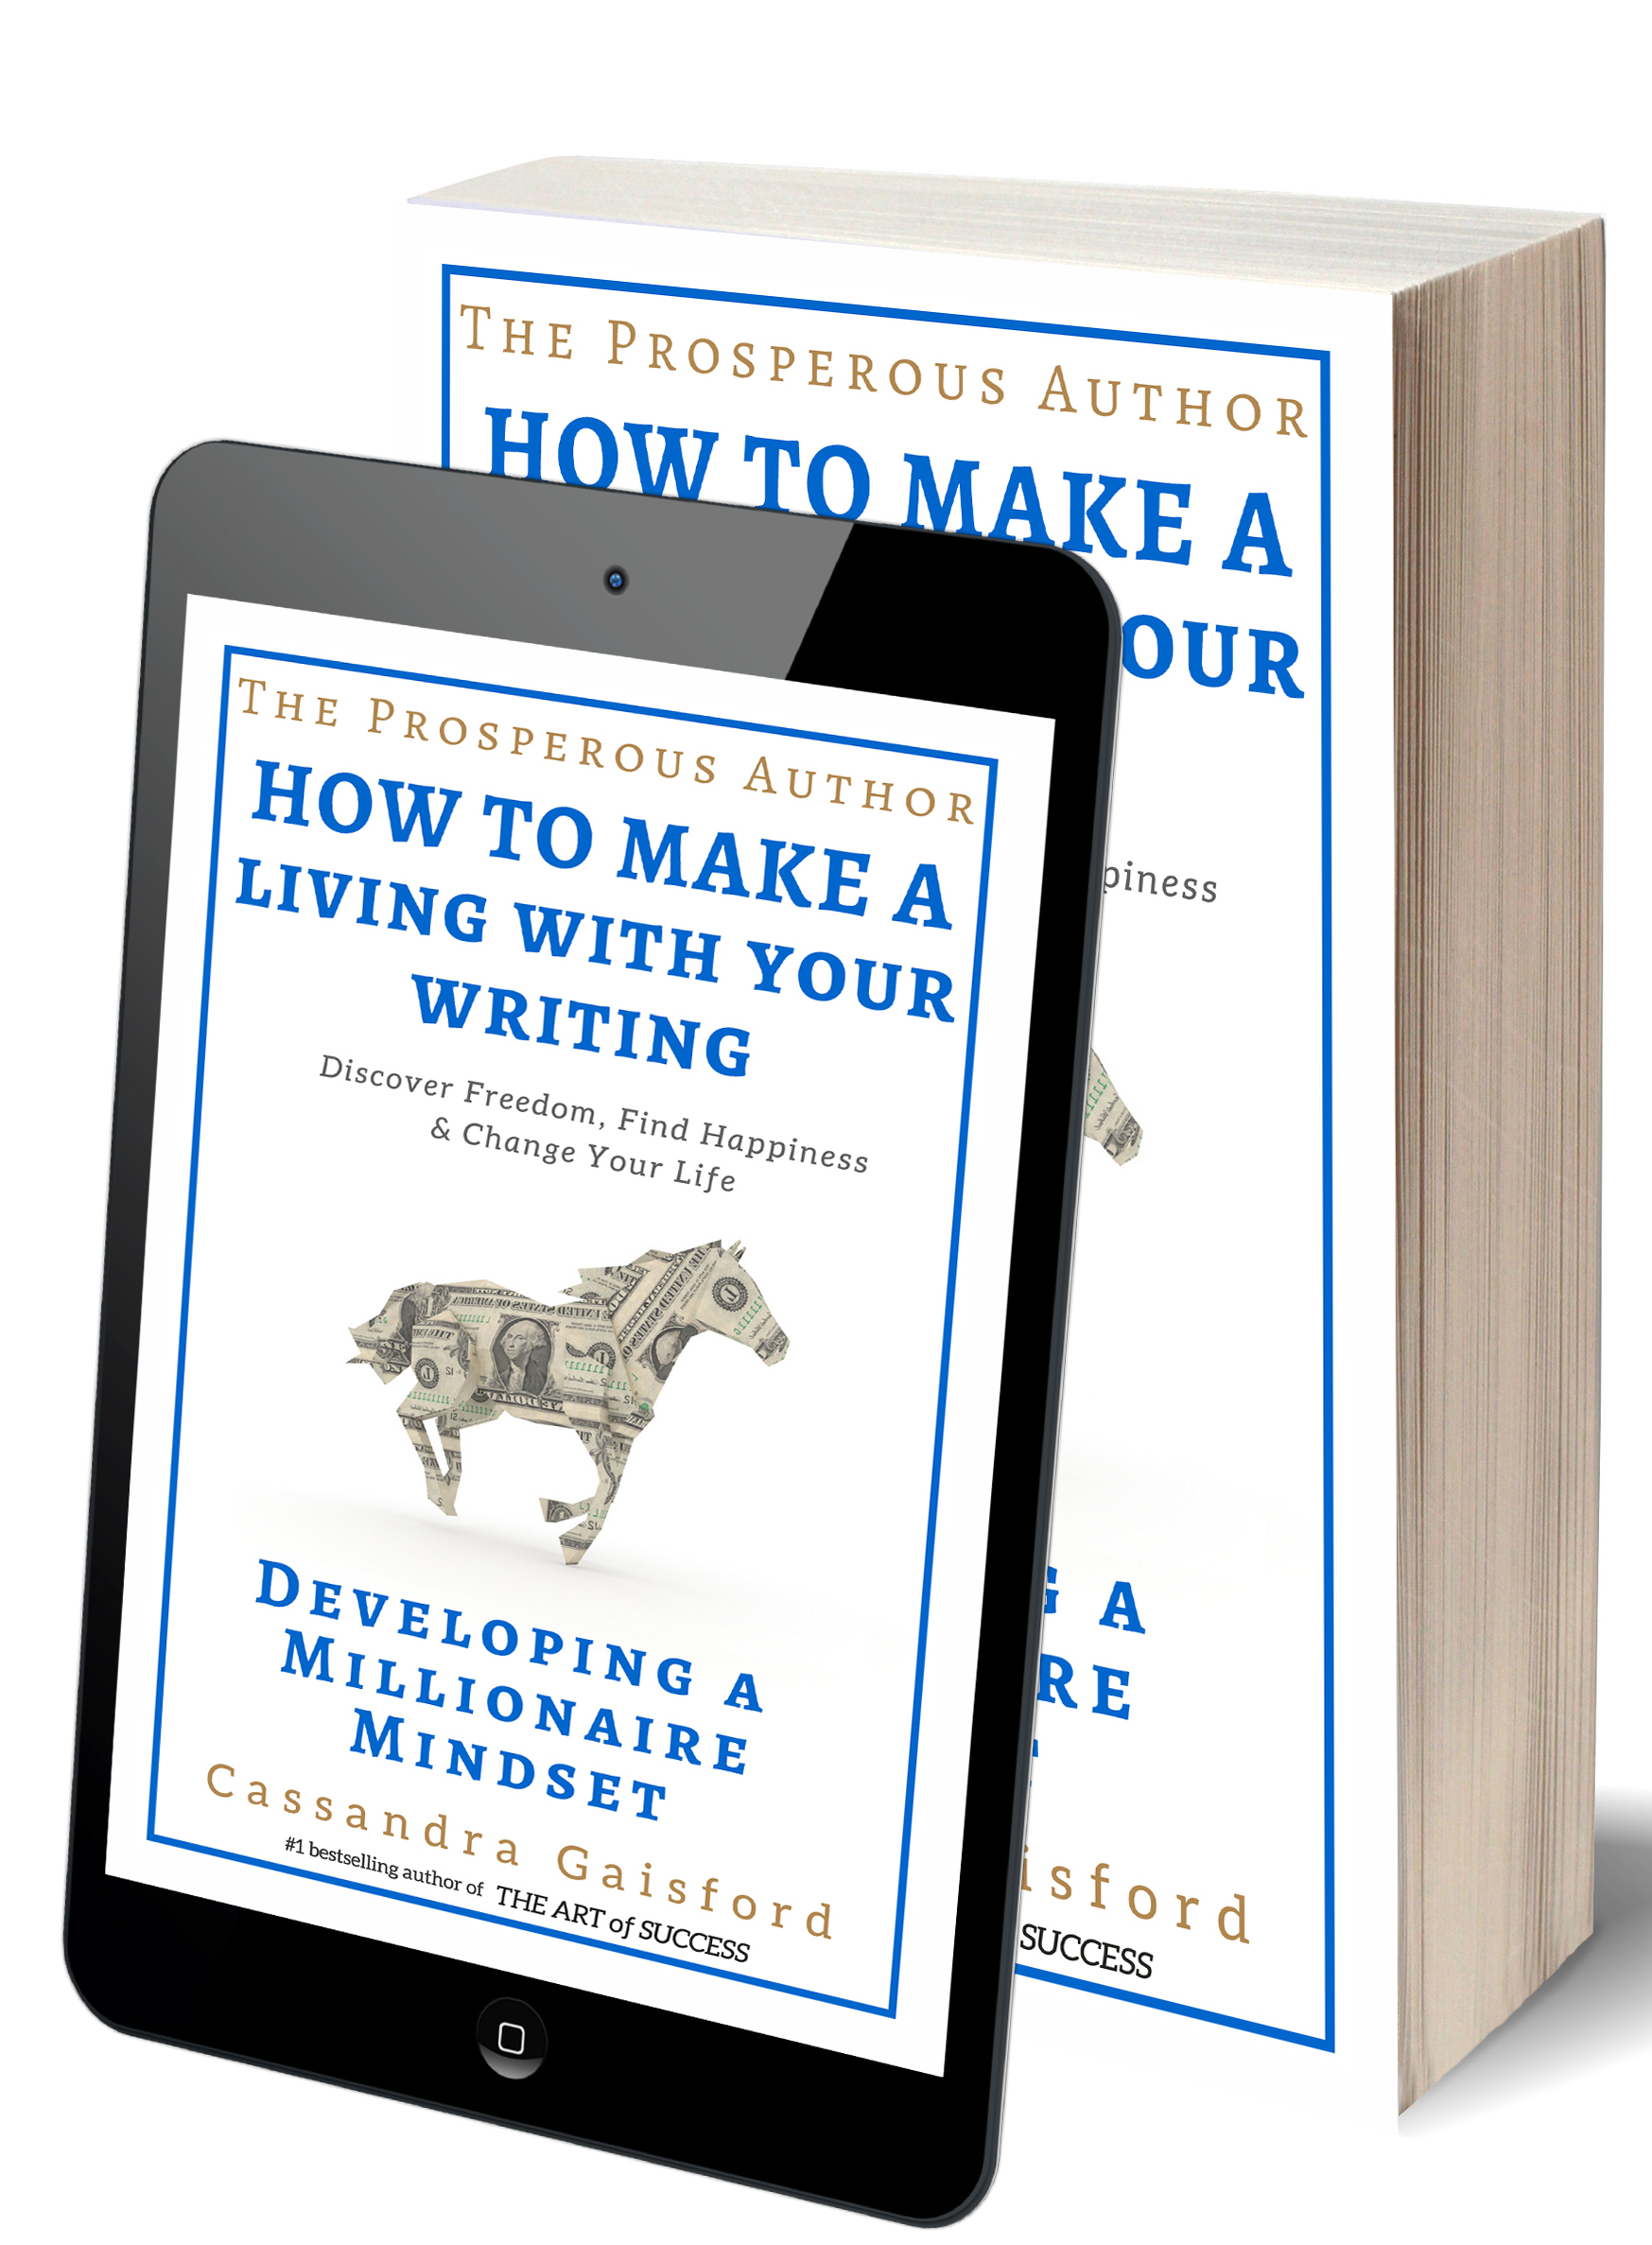 Art creativity cassandra gaisford this is an edited extract from the prosperous author how to make a living with your writing book one developing a millionaire mindset by cassandra fandeluxe Images